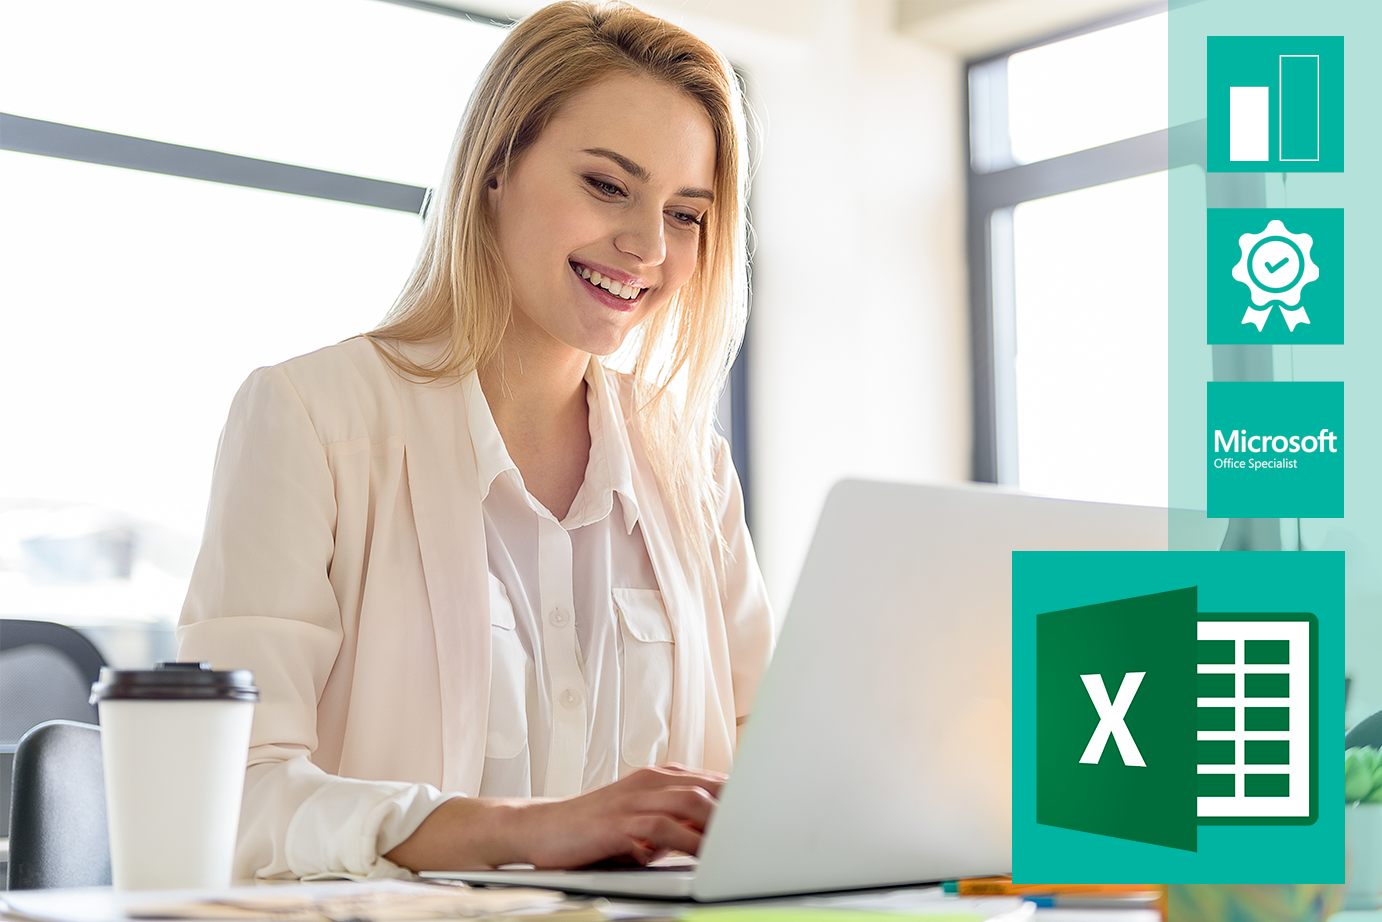 Microsoft Office Specialist Paket - Microsoft Excel 2016 Core video-based Training zu Microsoft Office Specialist - Microsoft Excel 2016 Core